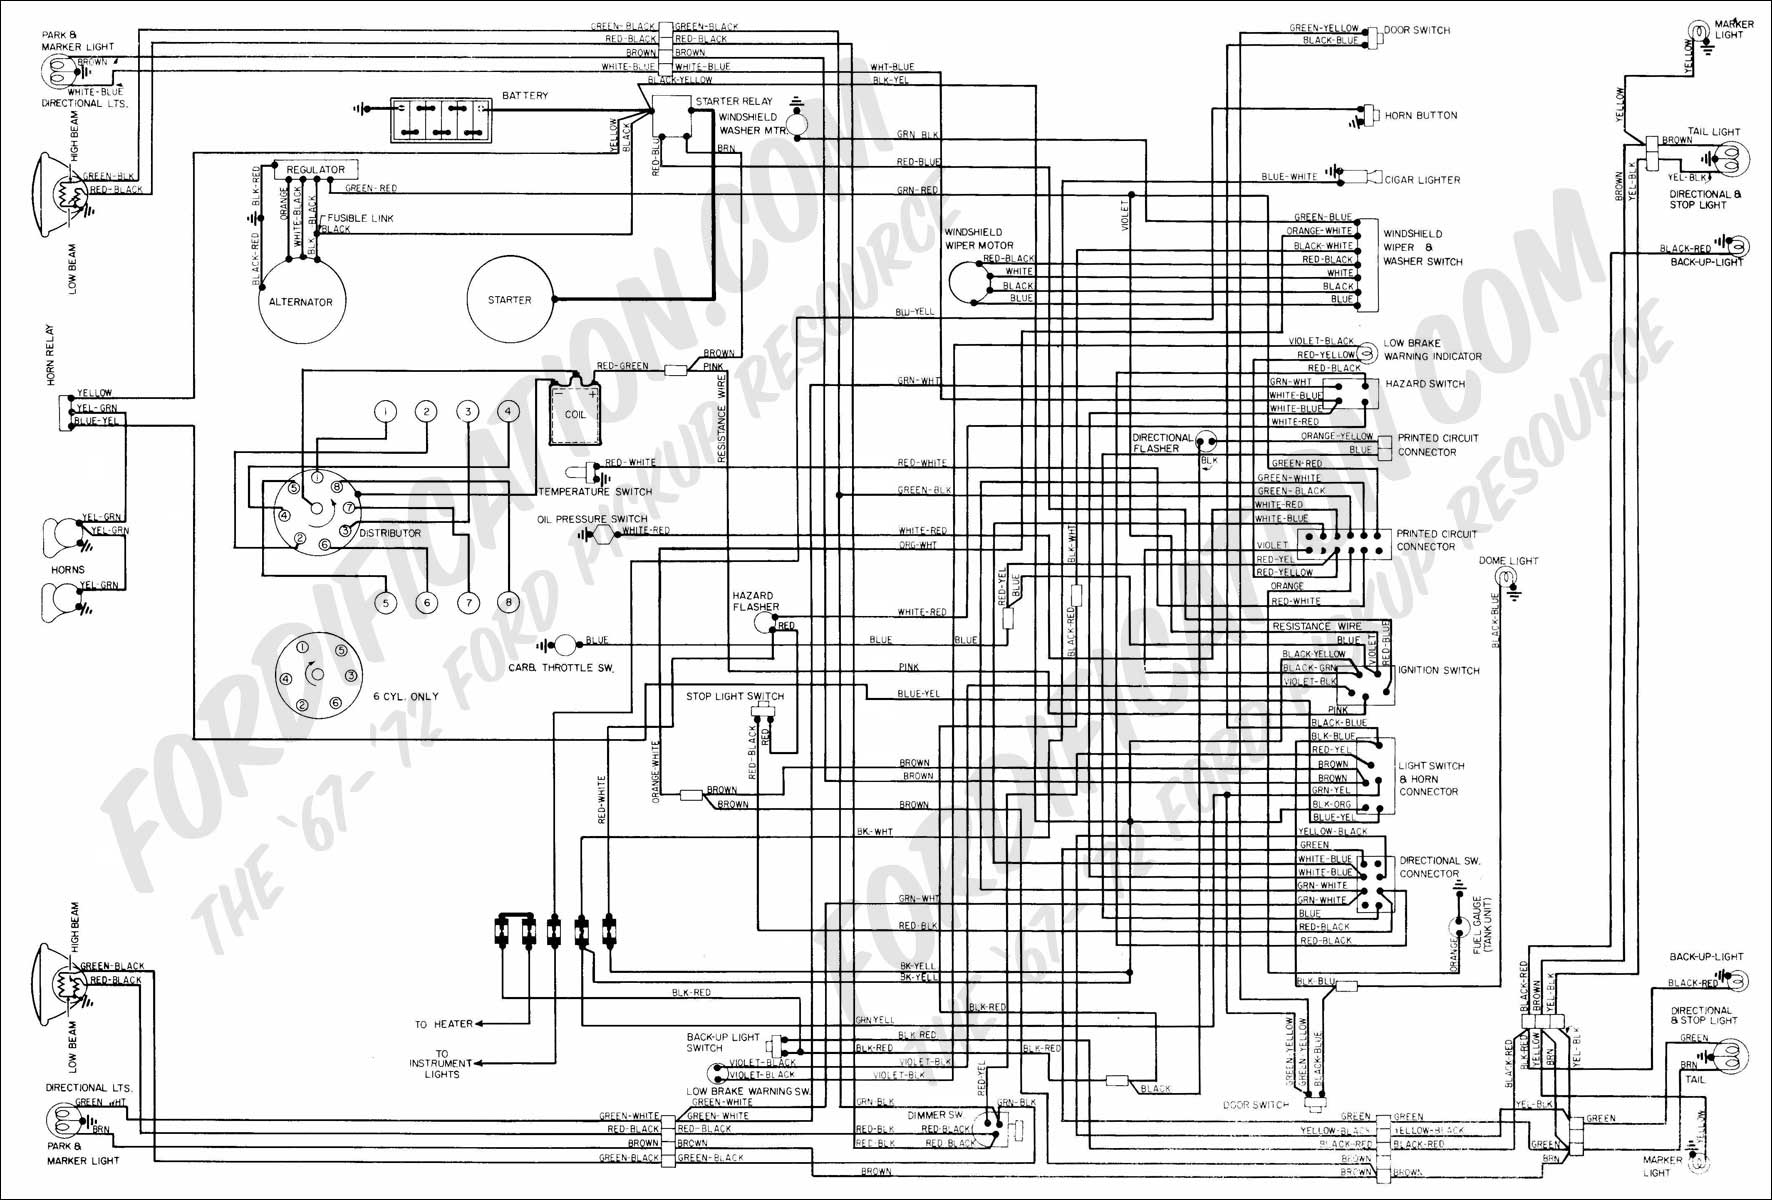 2008 Dodge Ram 3500 Trailer Wiring Diagram. Dodge. Wiring Diagrams ...